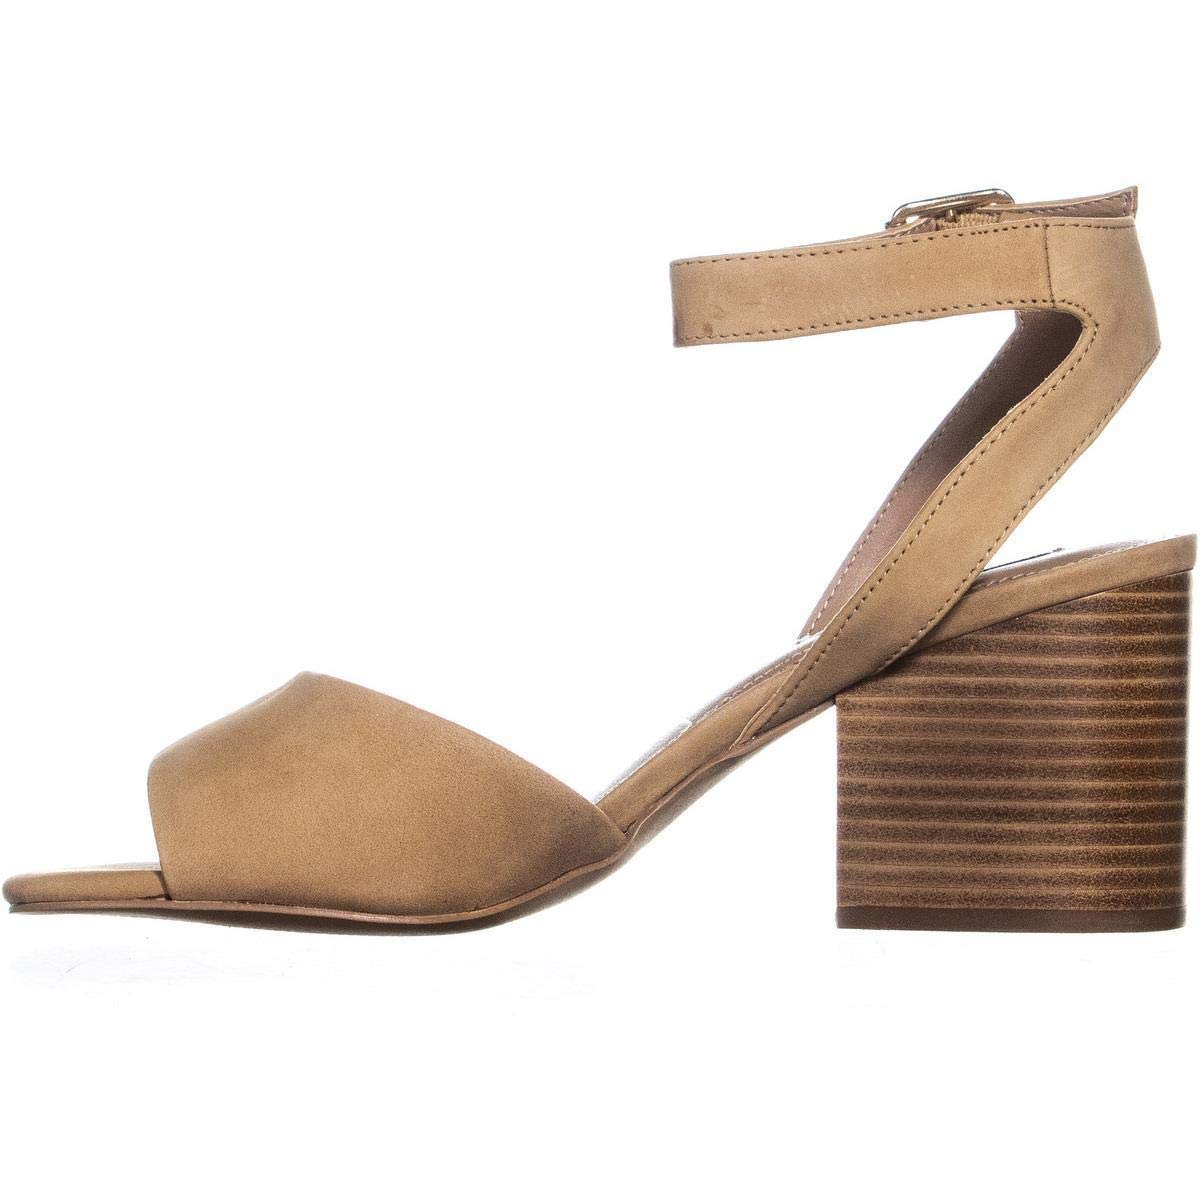 9a28e9b5796 Details about Steve Madden Womens Devlin Leather Peep Toe Casual Ankle  Strap Sandals